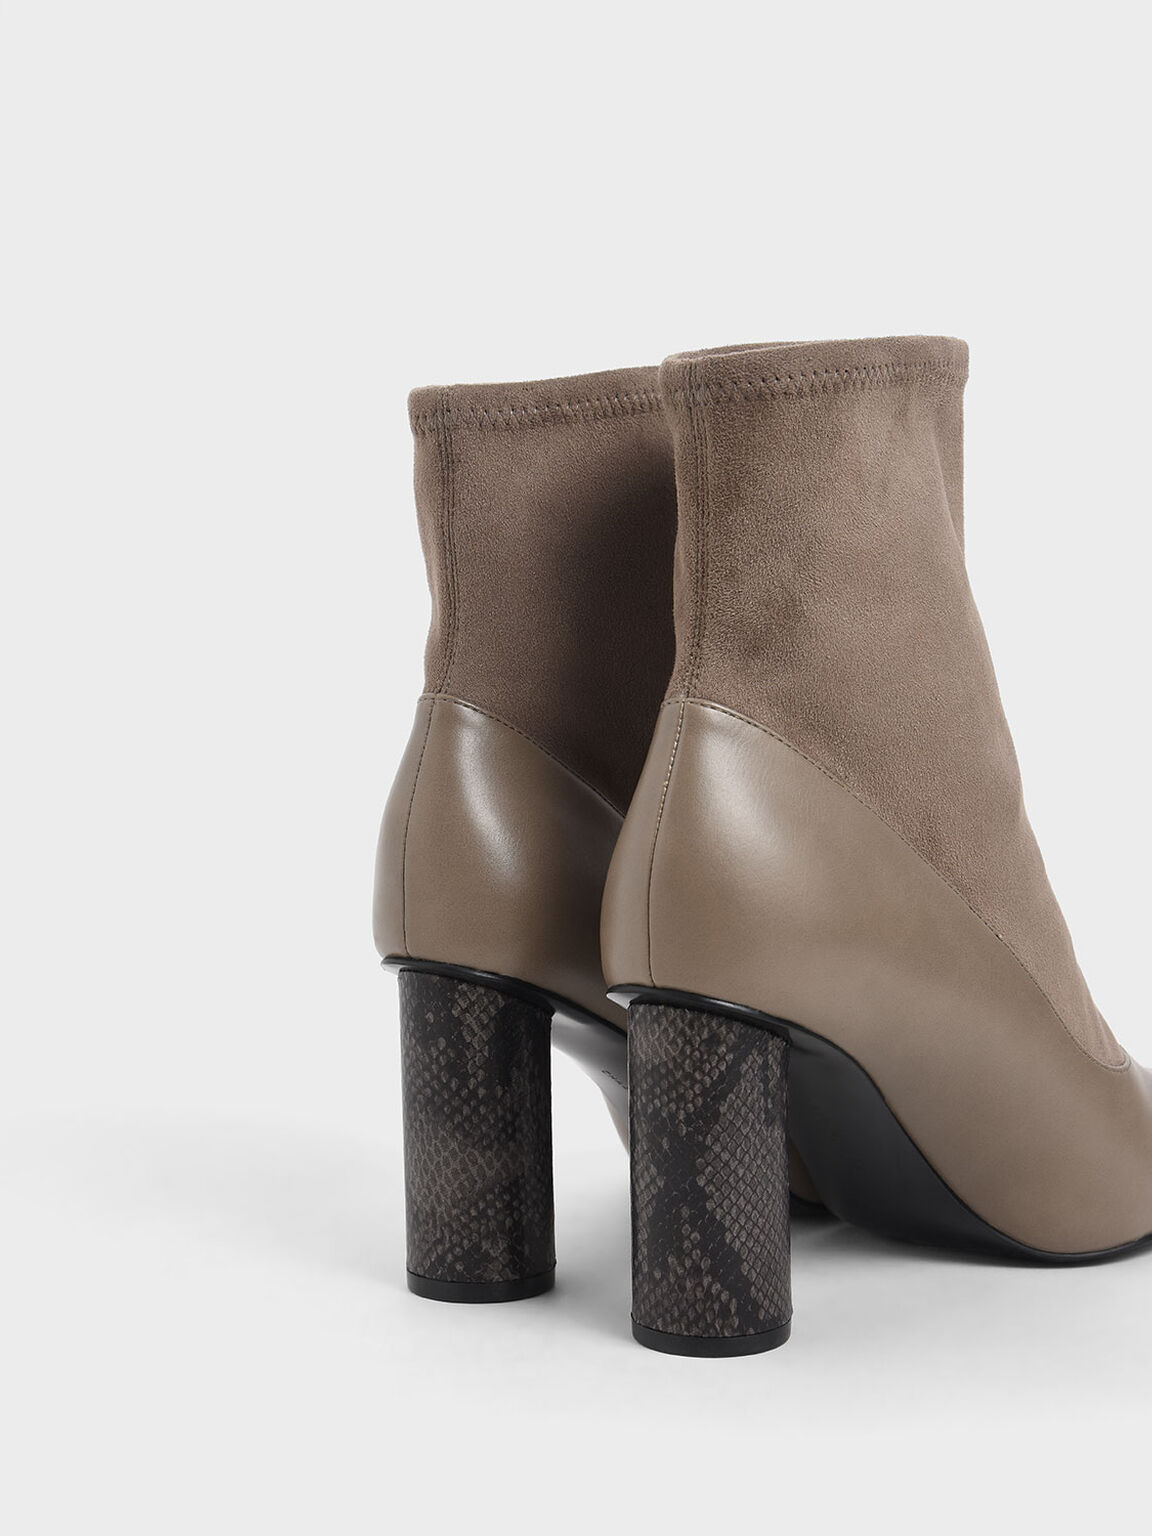 Textured Cylindrical Heel Ankle Boots, Taupe, hi-res